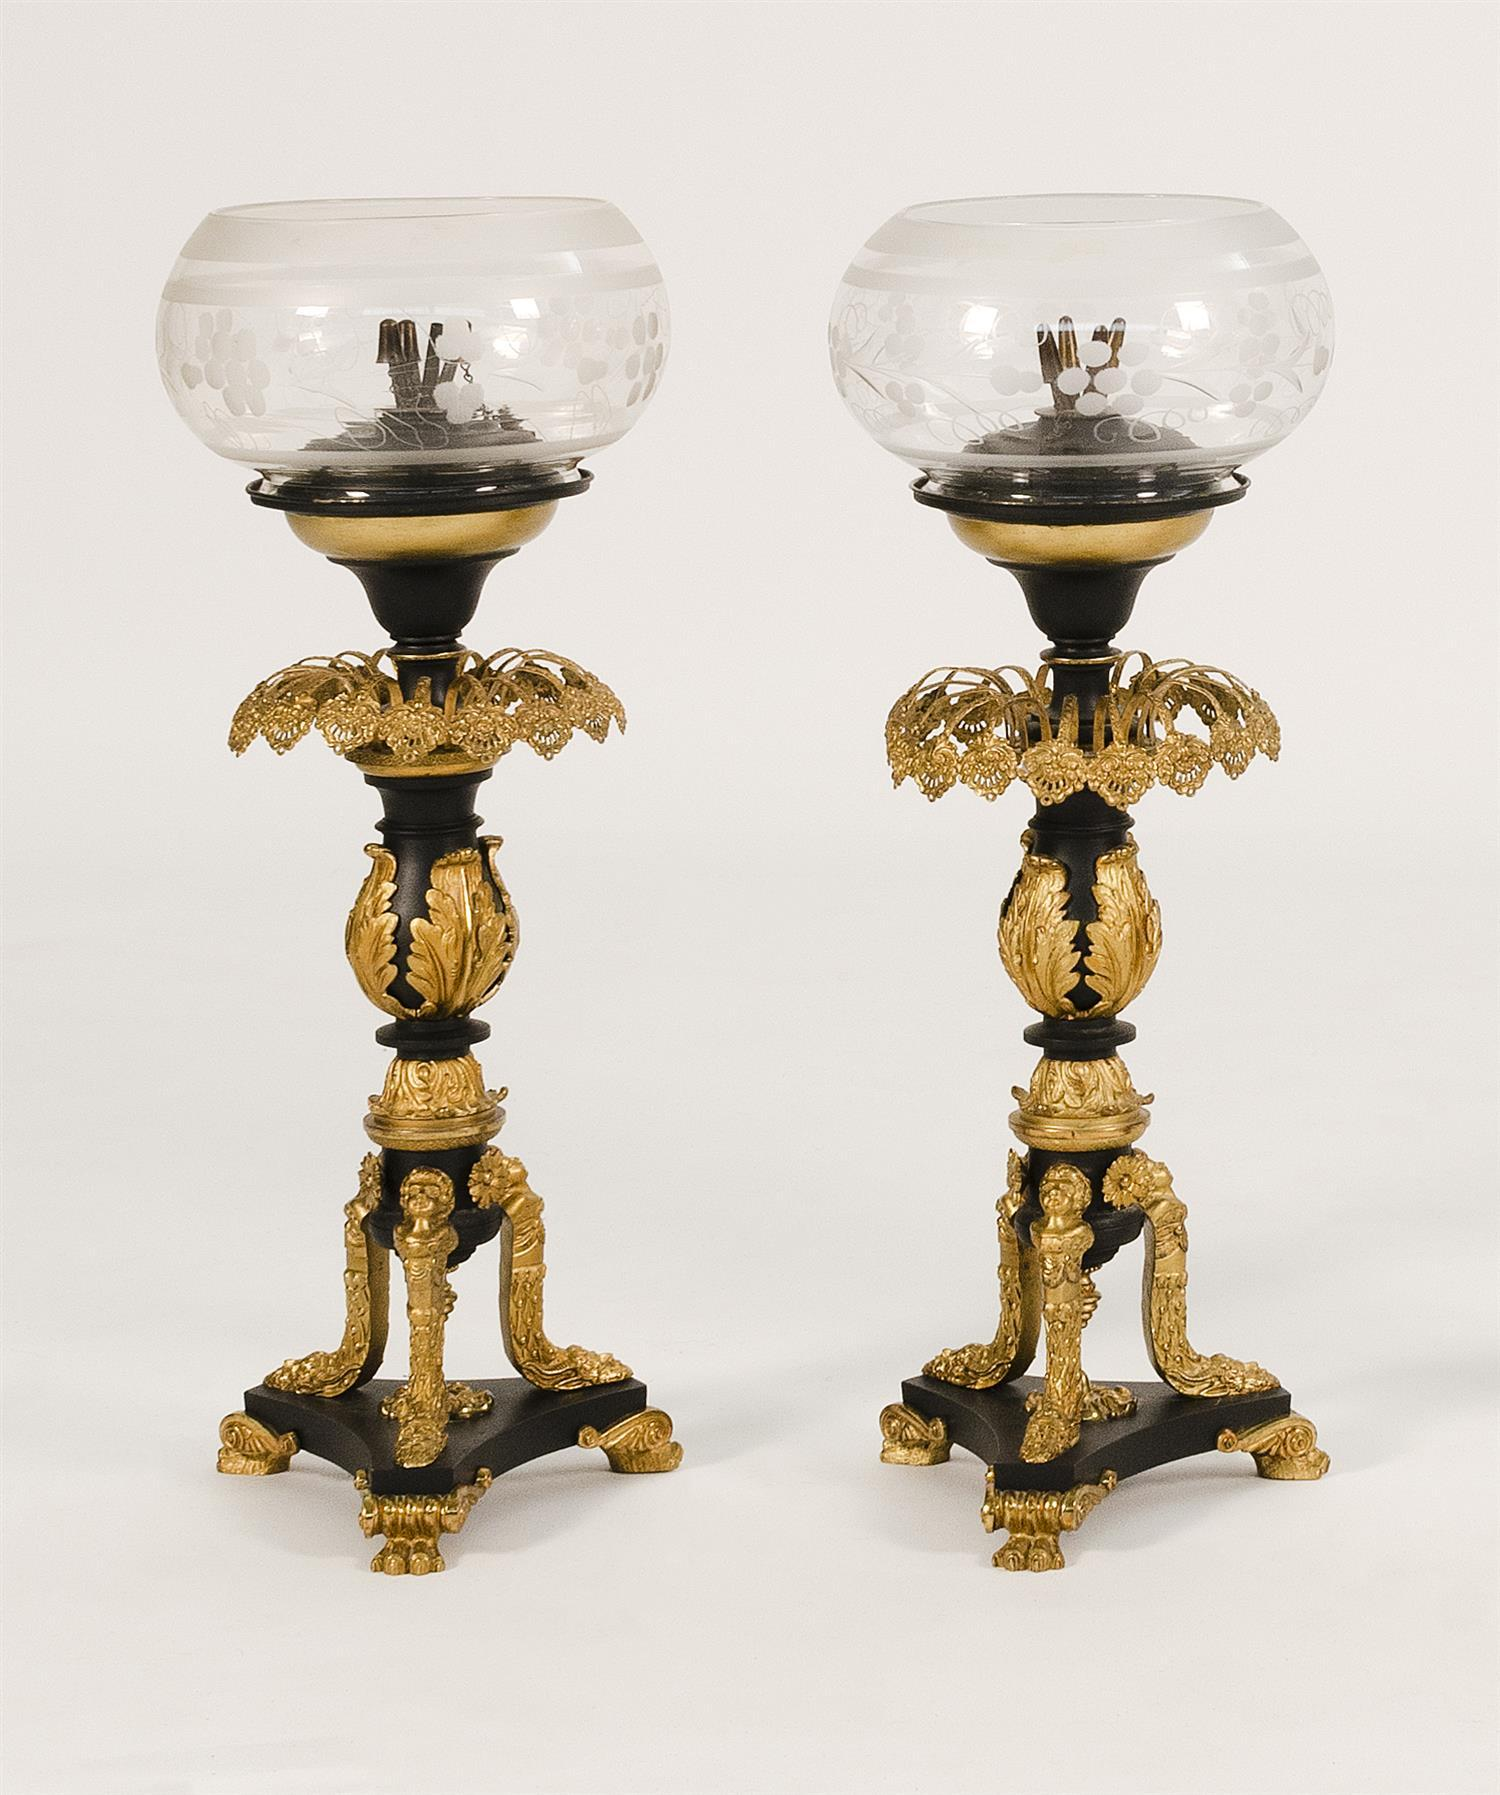 PAIR OF PARCEL-GILDED CAST METAL SINUMBRA LAMPS Shades with floral design. Neoclassical bases adorned with foliage and masks. Height...